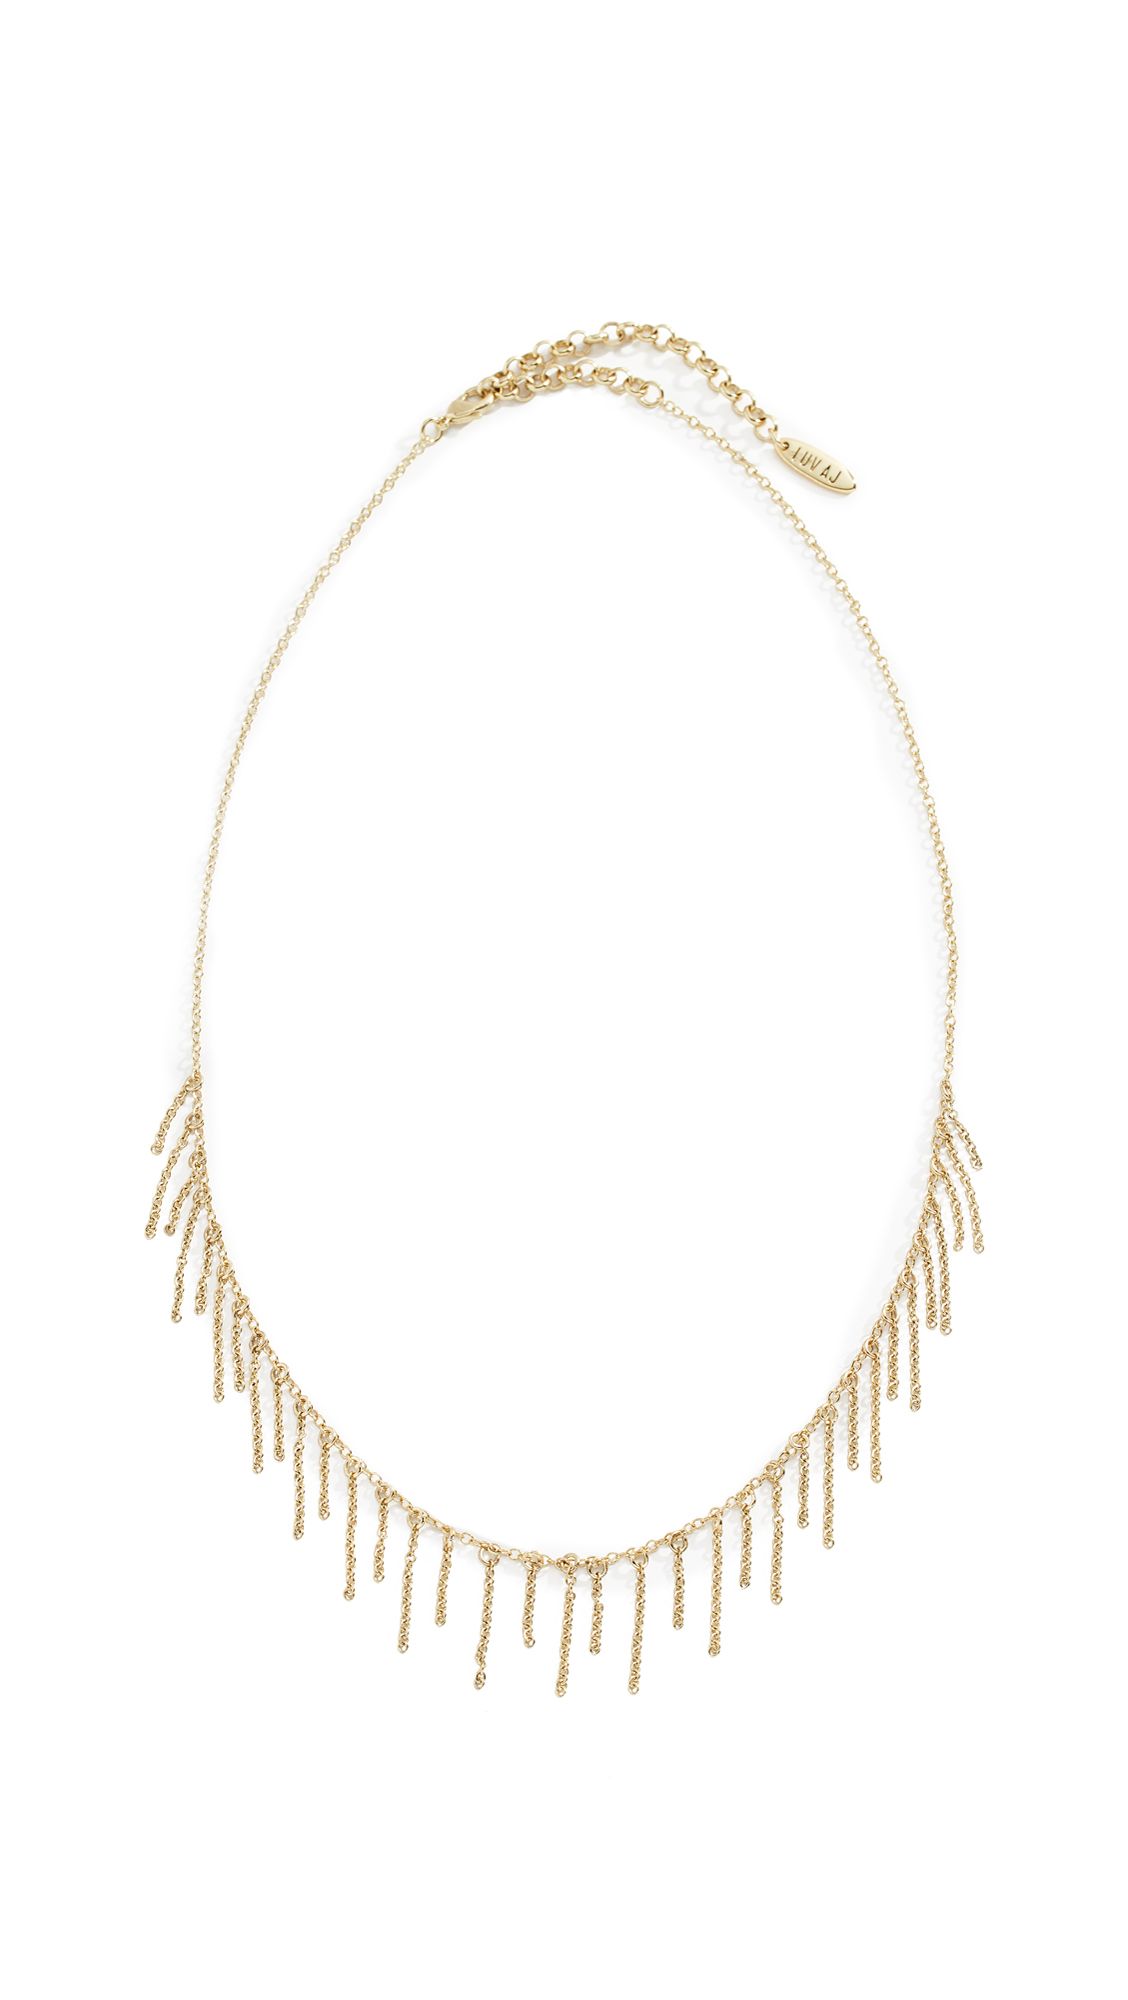 LUV AJ Chain Fringe Necklace in Yellow Gold